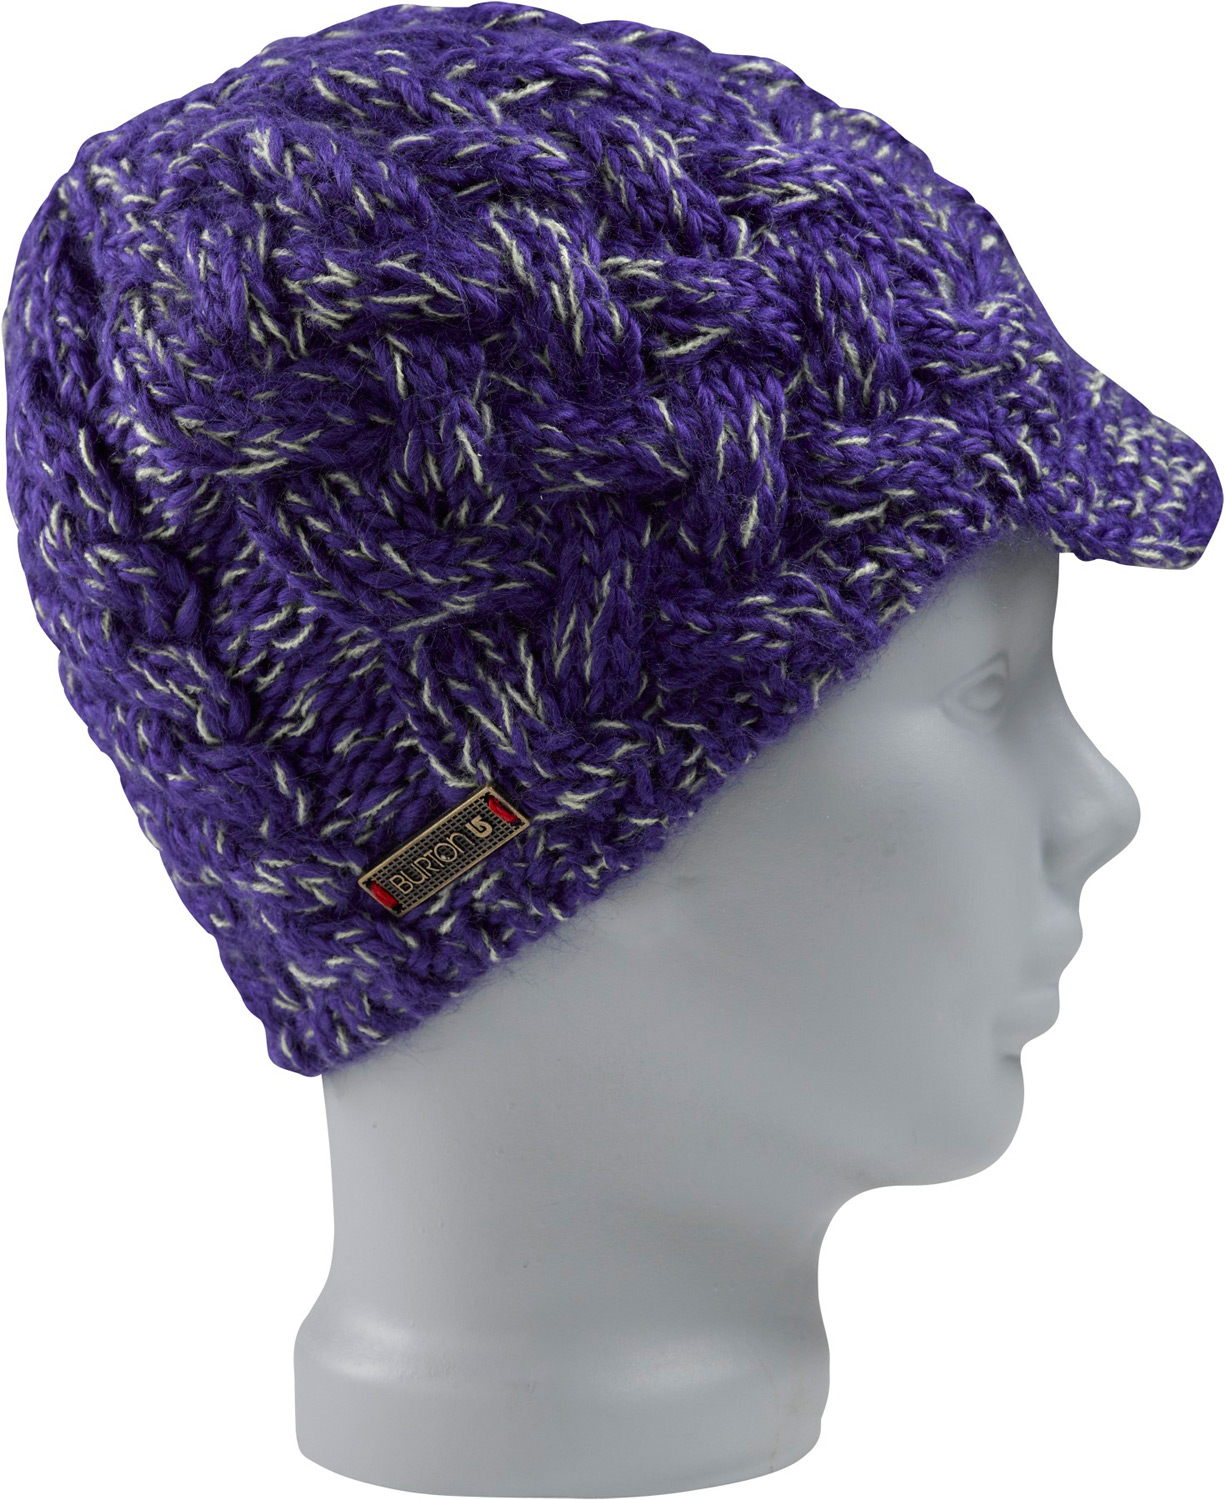 Snowboard Key Features of the Burton Breanie Beanie: 100% Ice Wool Twisted Yarn Brimmed Style Skully Fit - $21.95